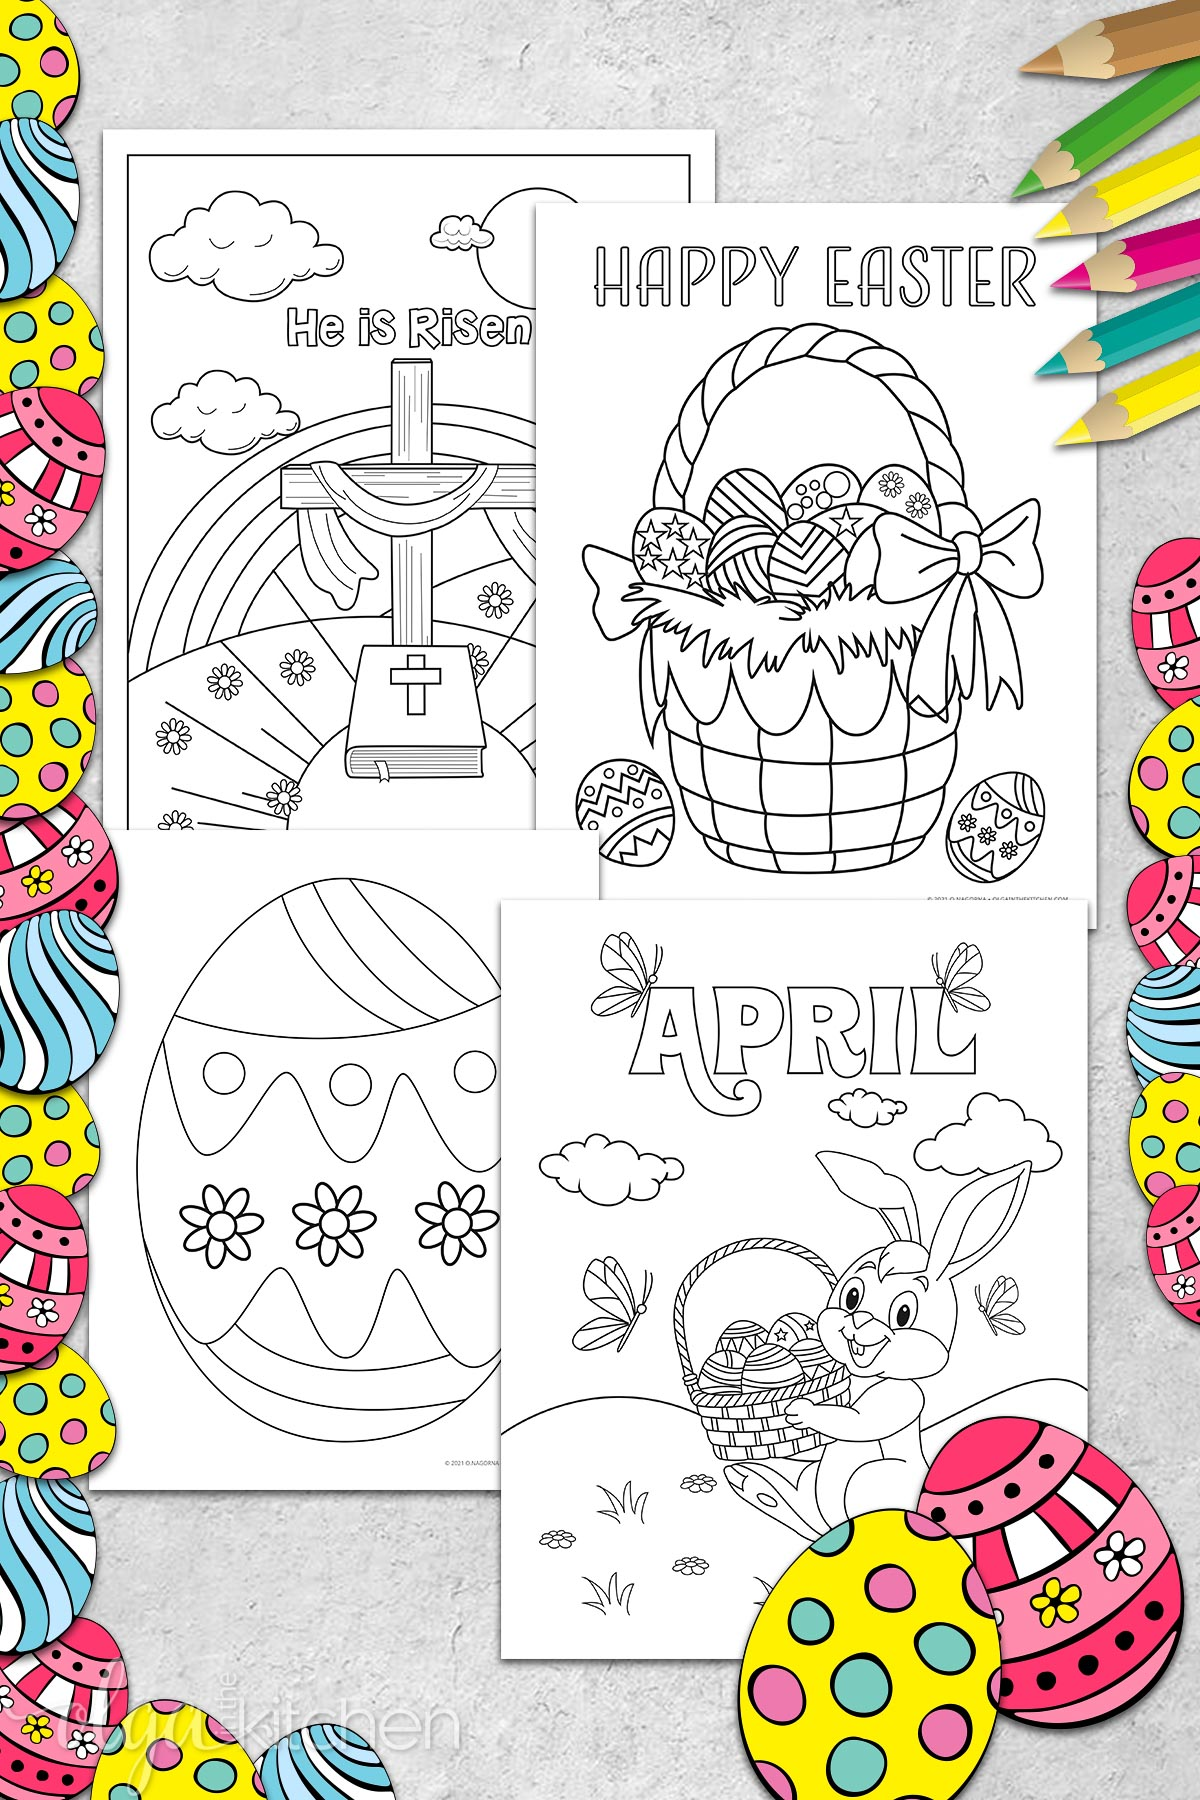 Easter coloring pages for kids and adults in black and white.